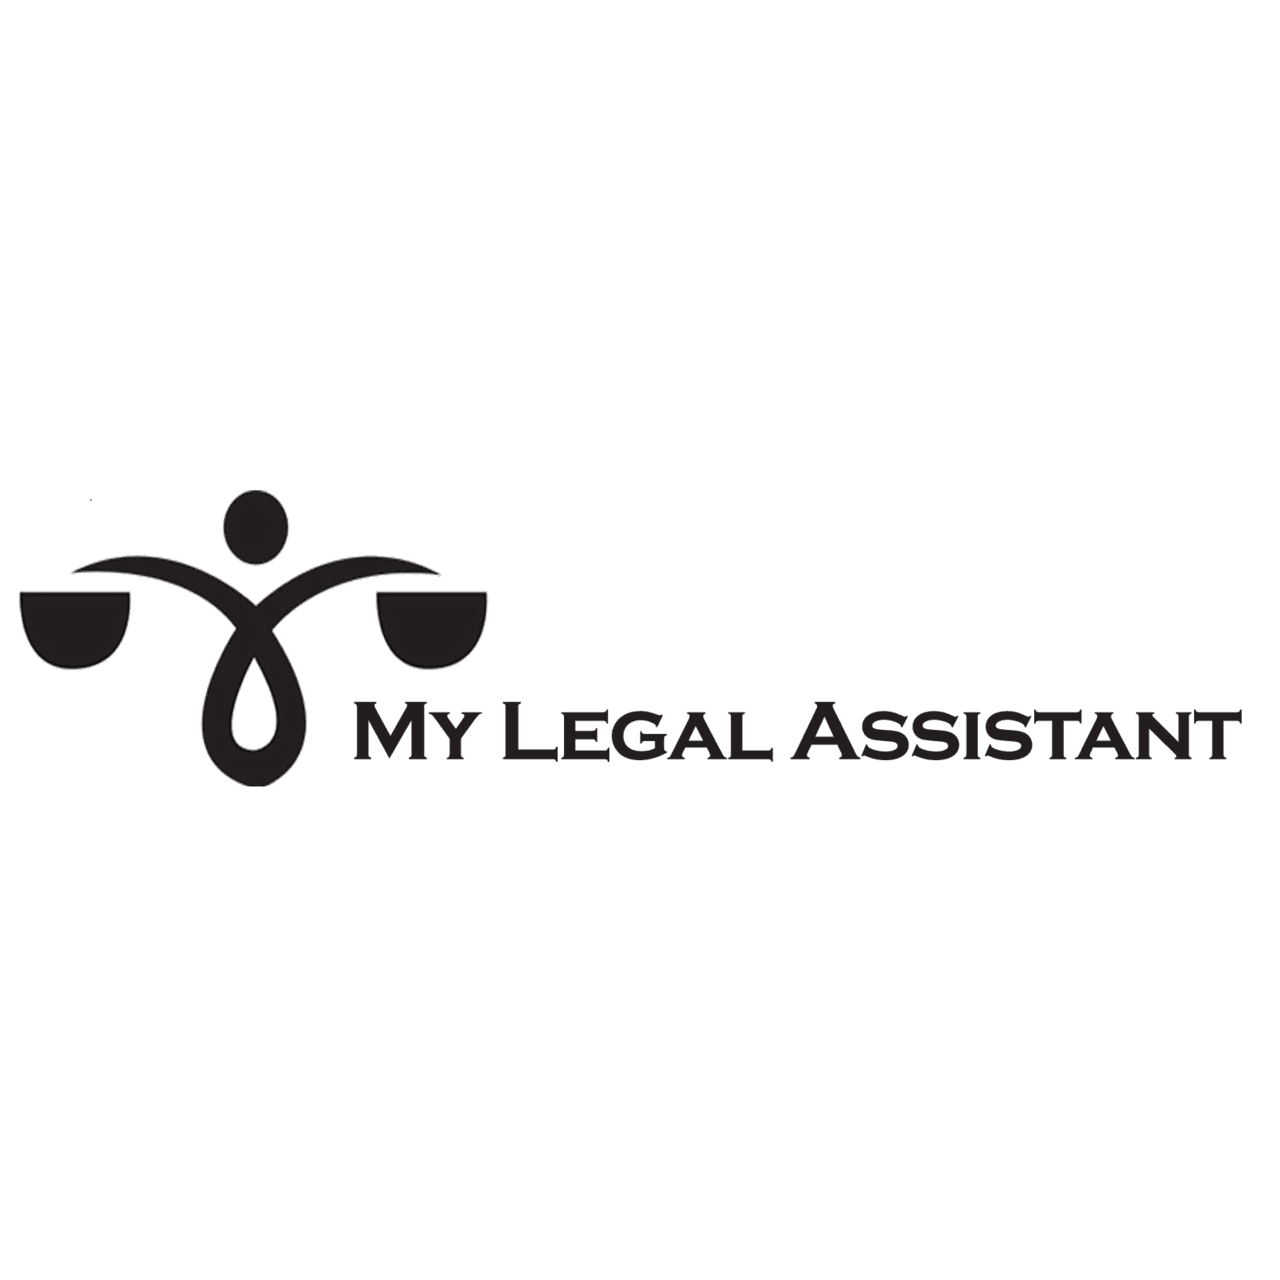 My Legal Assistant